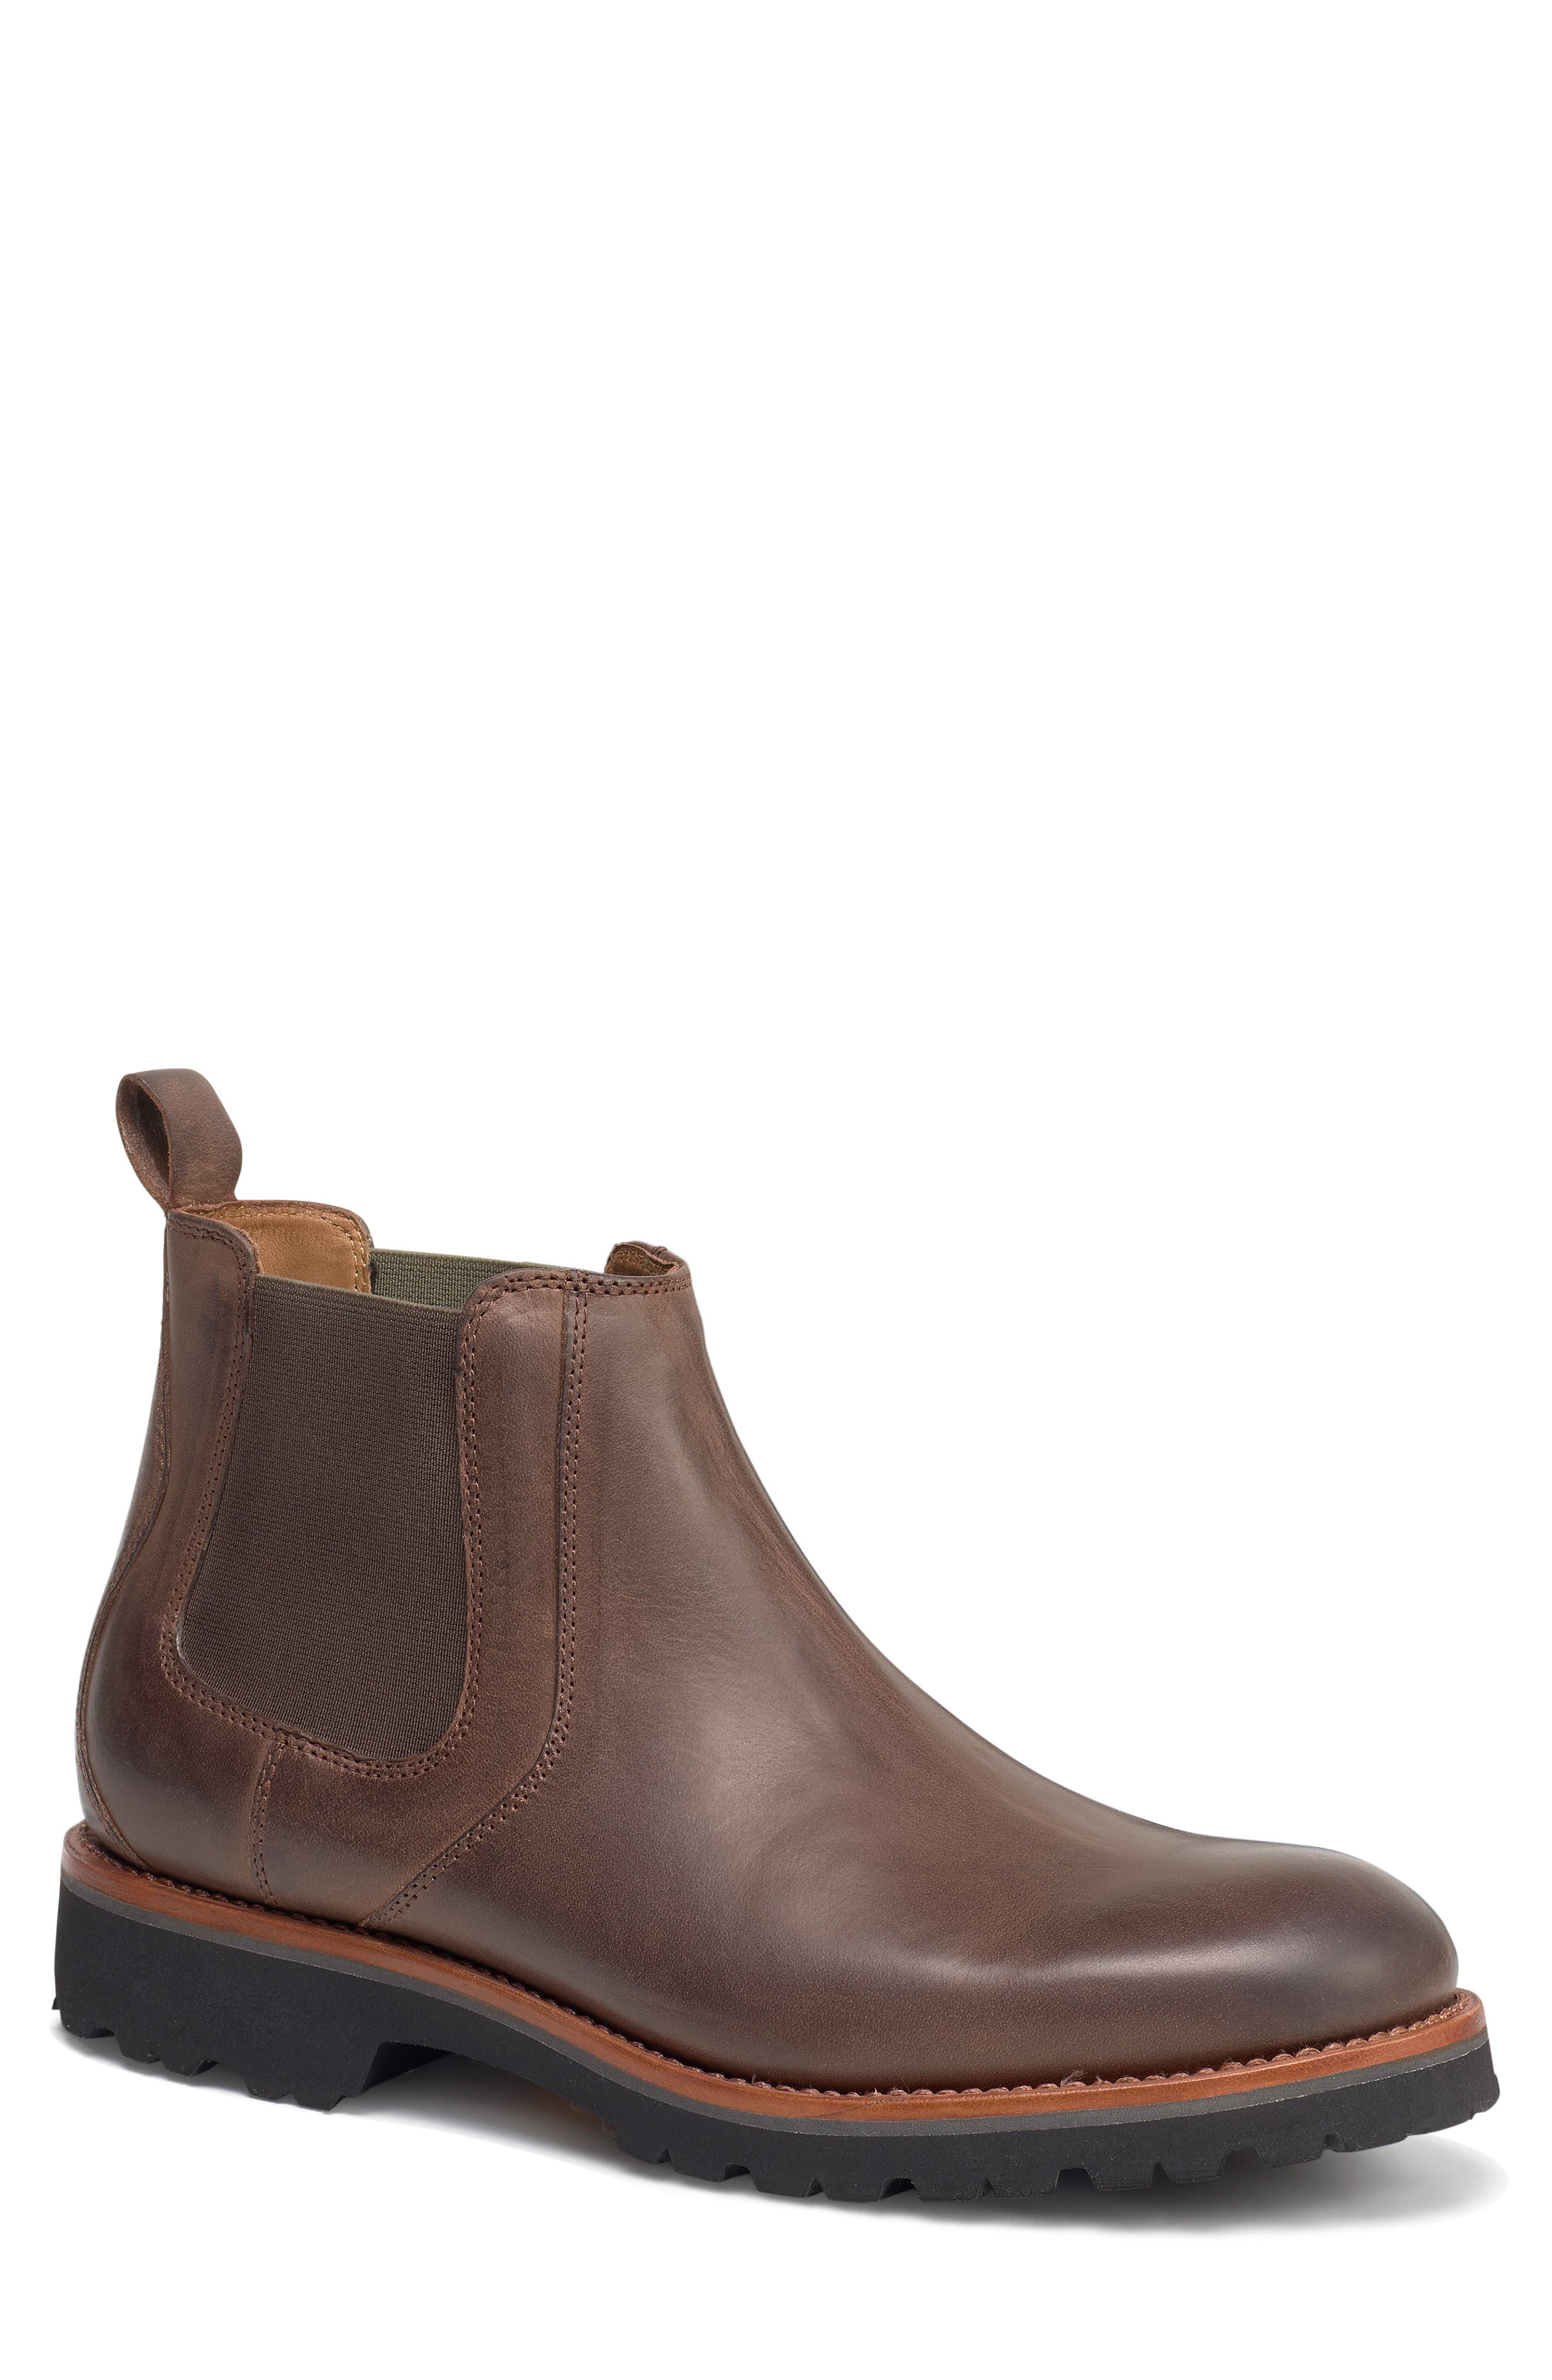 Hastings Lugged Chelsea Boot,                         Main,                         color, BROWN LEATHER